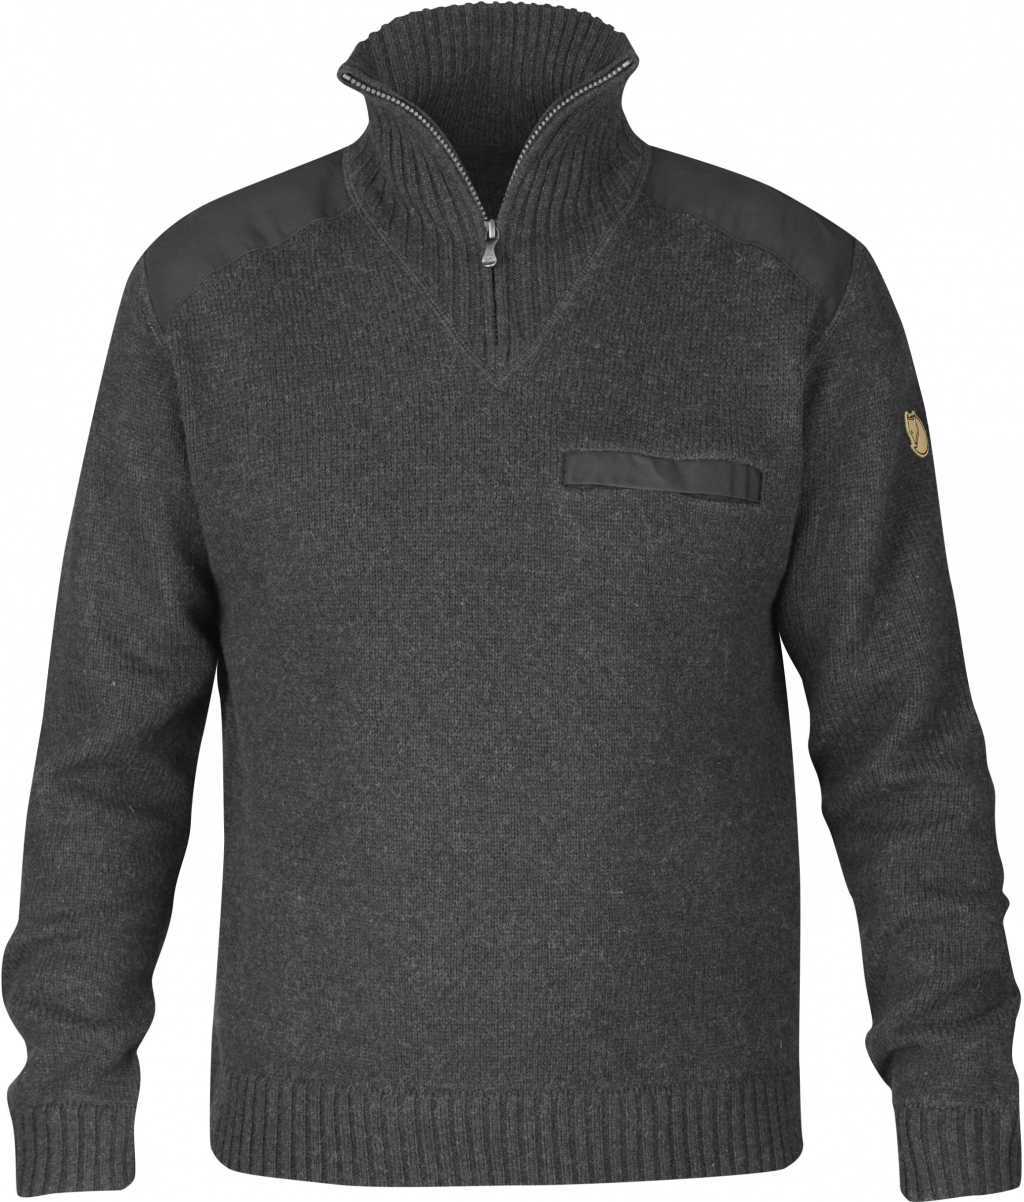 FjallRaven Koster Sweater Dark Grey-30